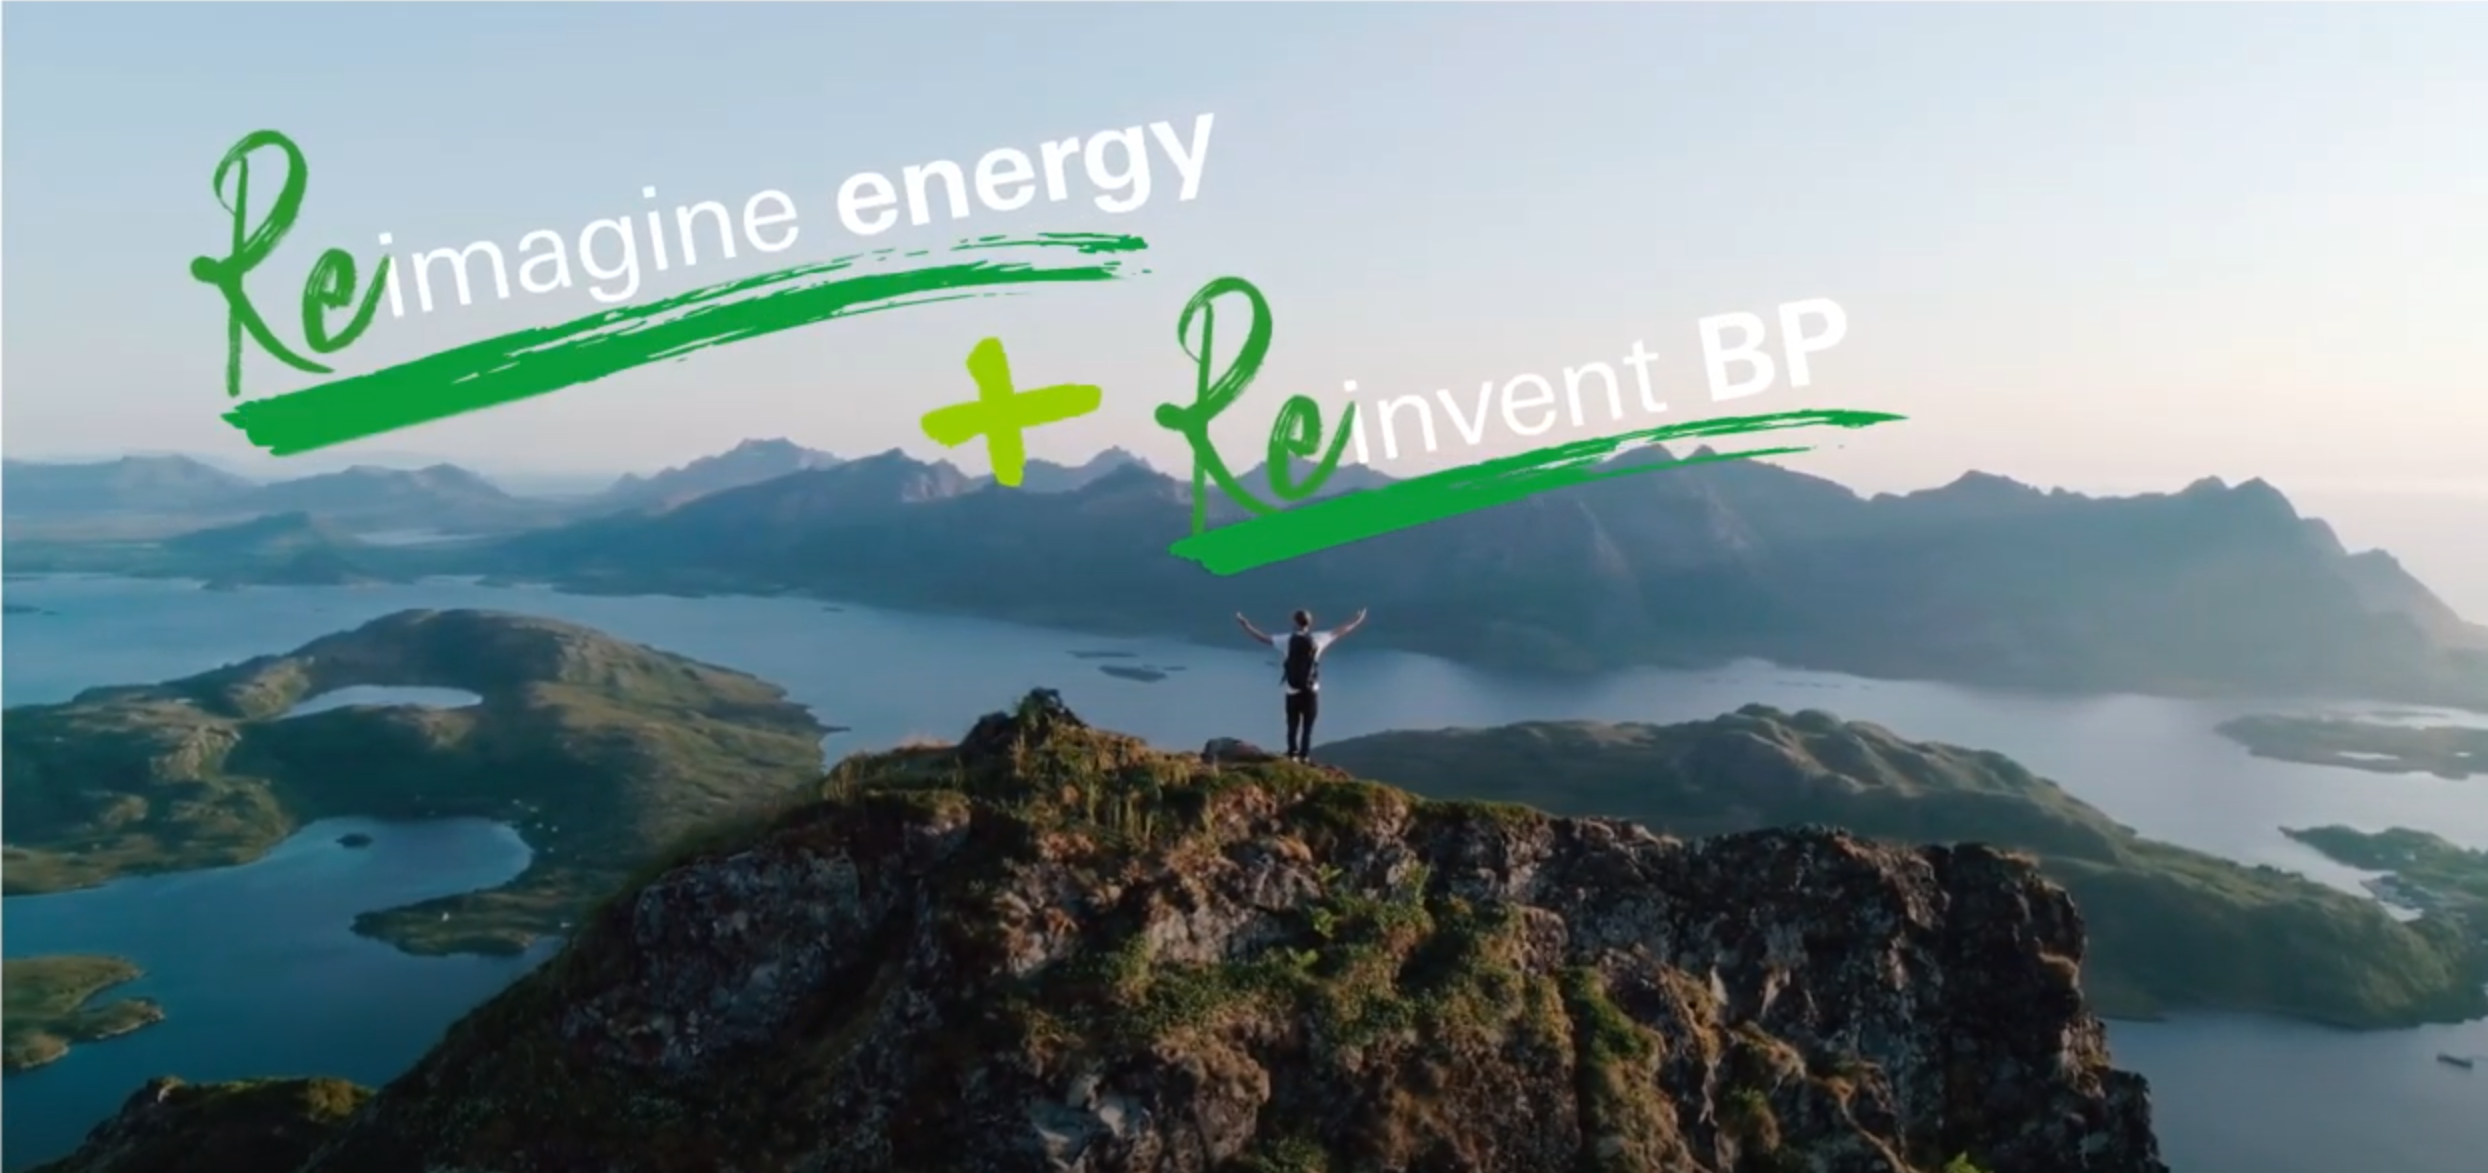 Reimagining-energy-for-people-and-our-planet